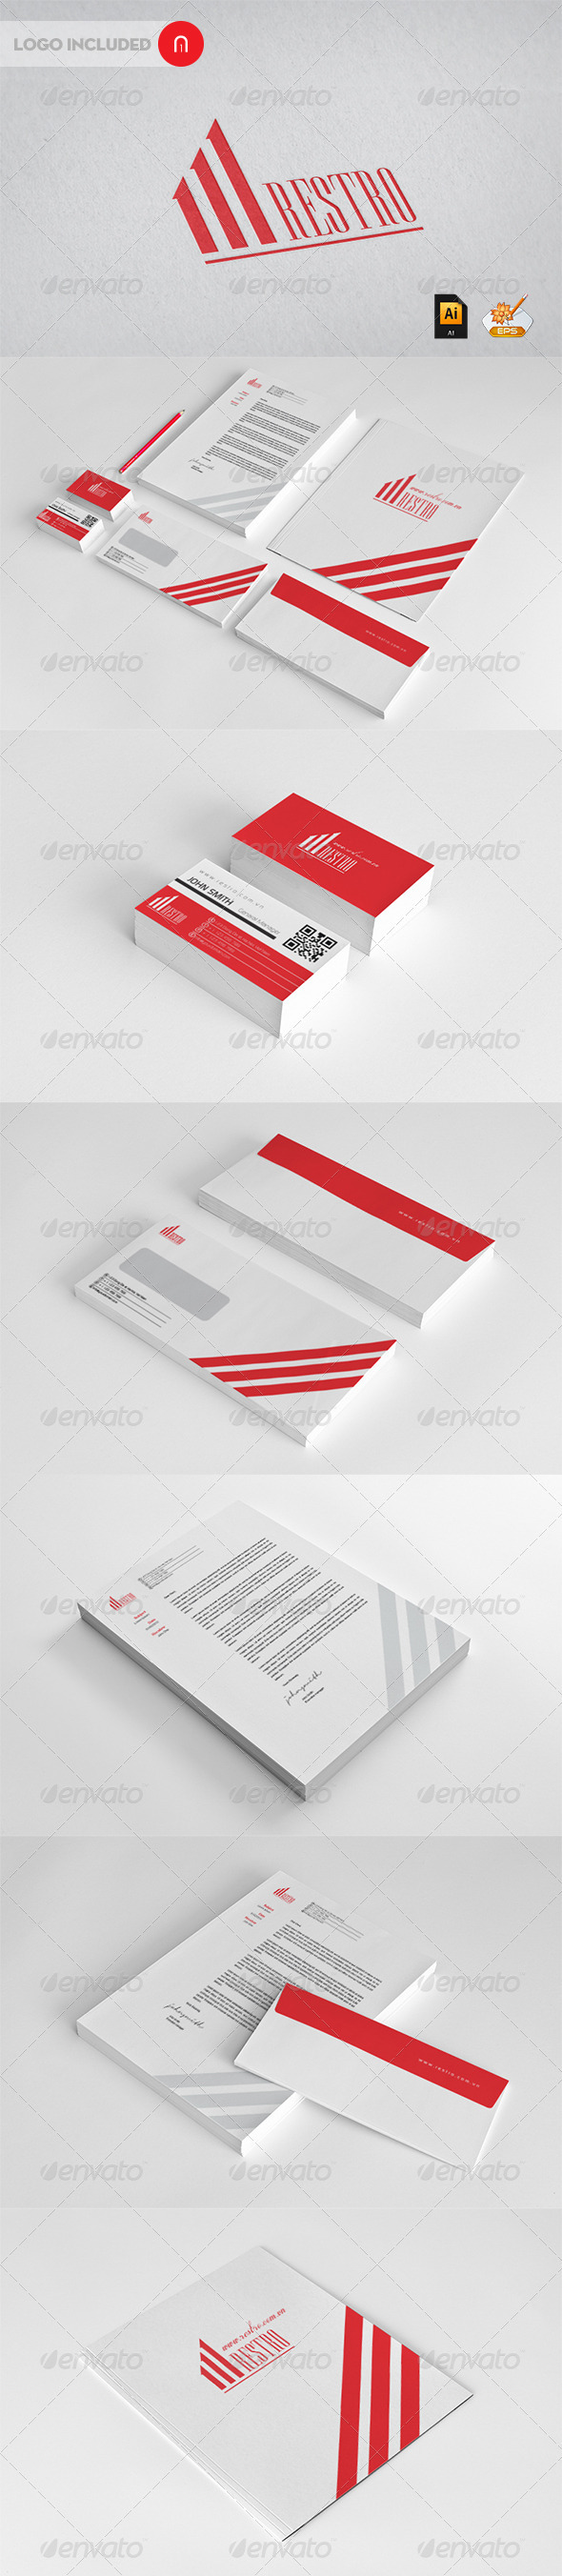 Restro Corporate Identity - Stationery Print Templates